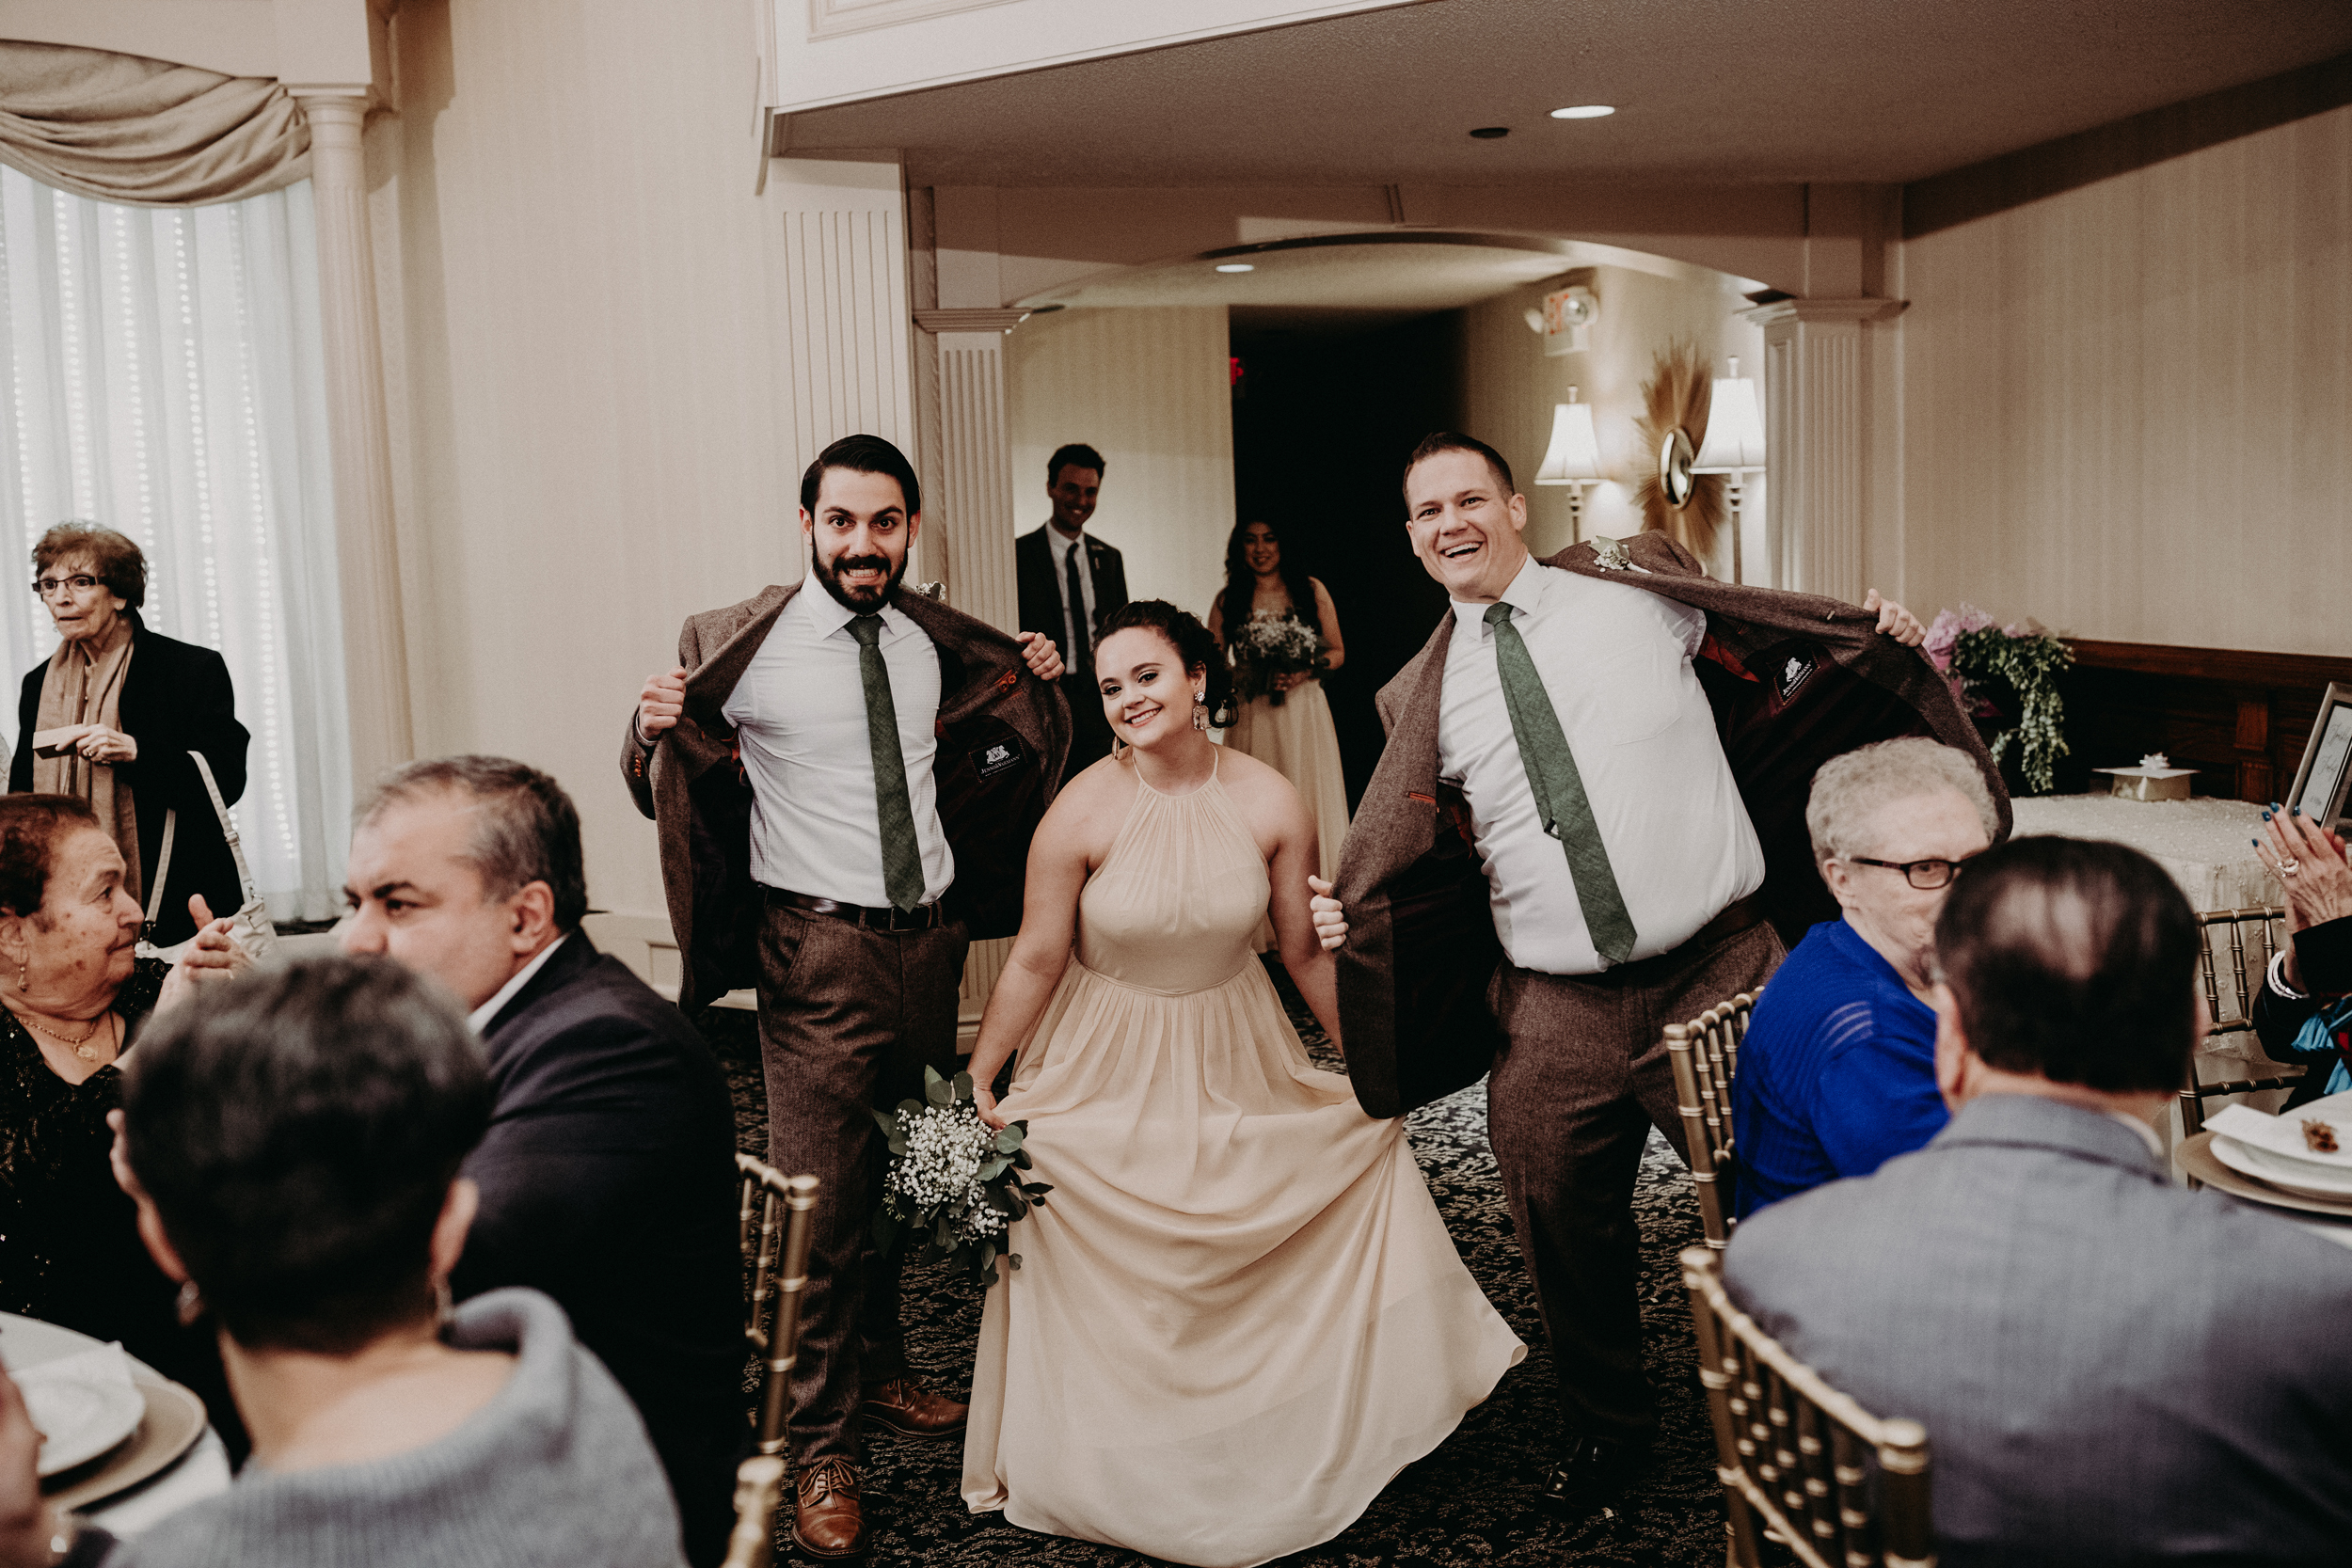 (0723) Liz + Jared (Wedding).jpg